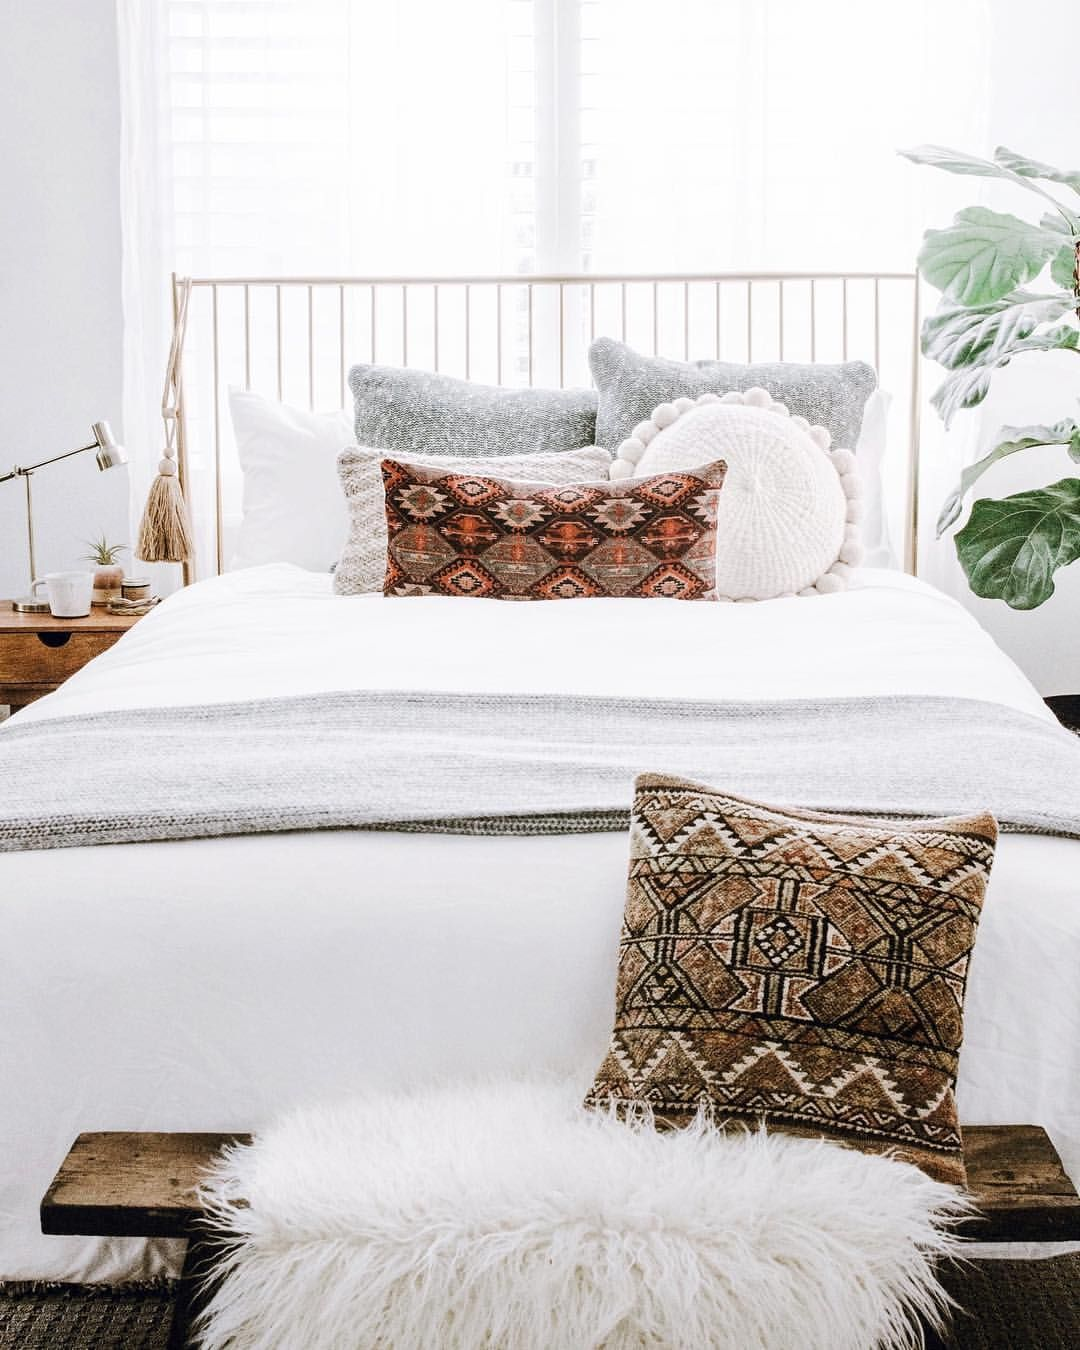 Pin by michelle torres on in the bedroom pinterest bedrooms